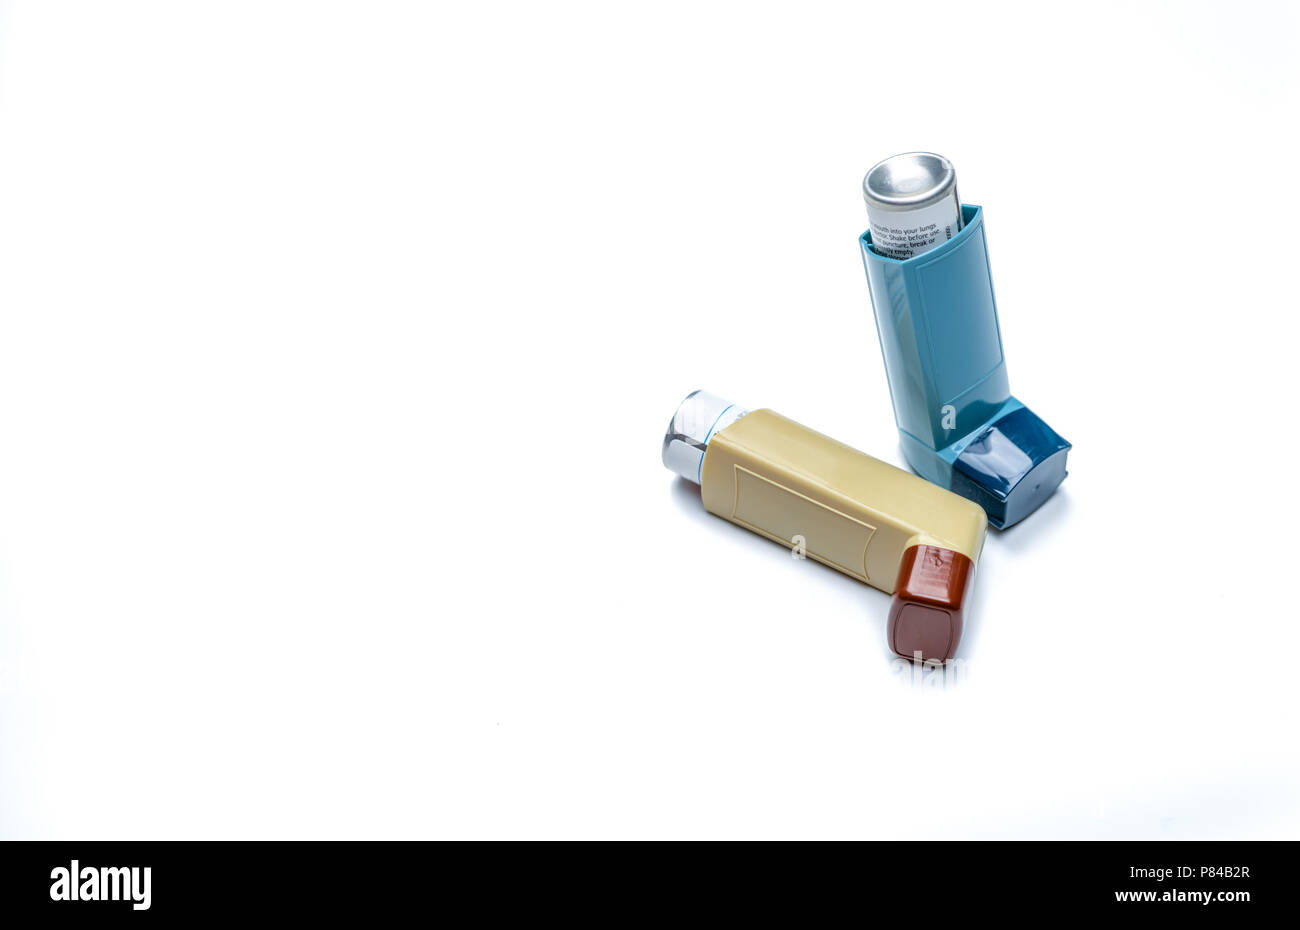 Asthma inhaler. Asthma controller, reliever equipment. Steroids and bronchodilator drug for asthma and chronic bronchitis. Budesonide aerosol CFC free - Stock Image